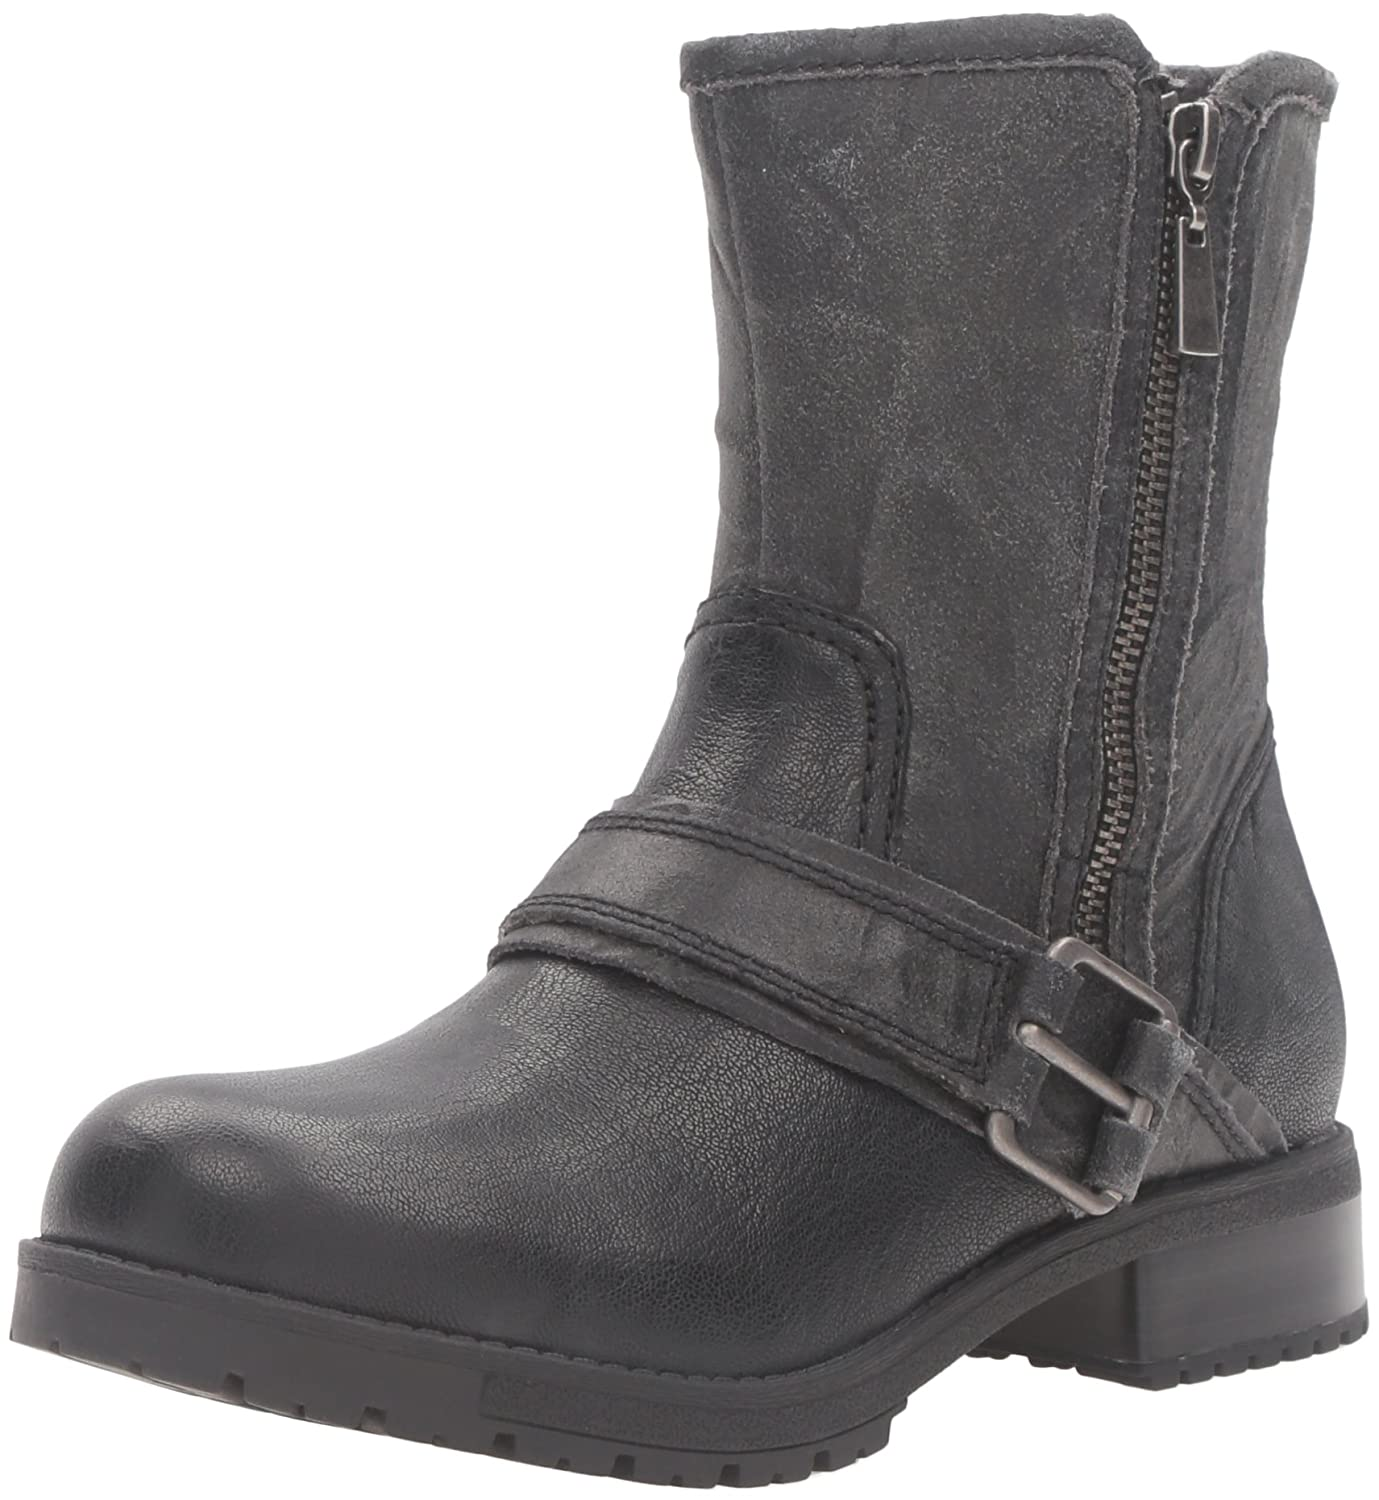 CLARKS Women's Faralyn Rise Boot B0198WE420 5.5 B(M) US|Black Nubuck